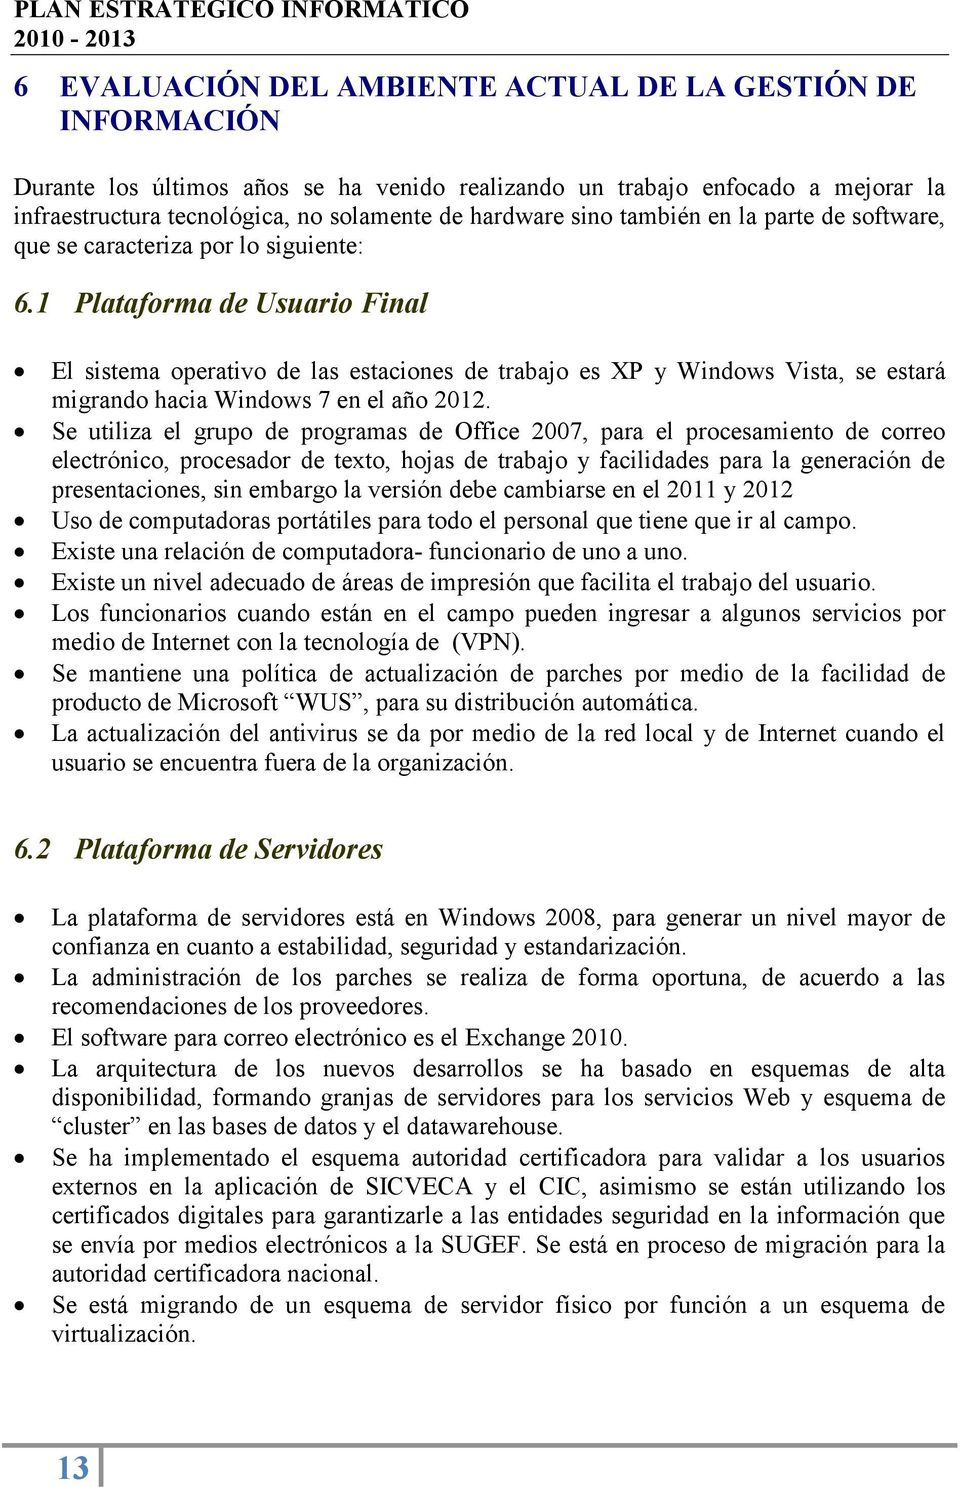 1 Plataforma de Usuario Final El sistema operativo de las estaciones de trabajo es XP y Windows Vista, se estará migrando hacia Windows 7 en el año 2012.